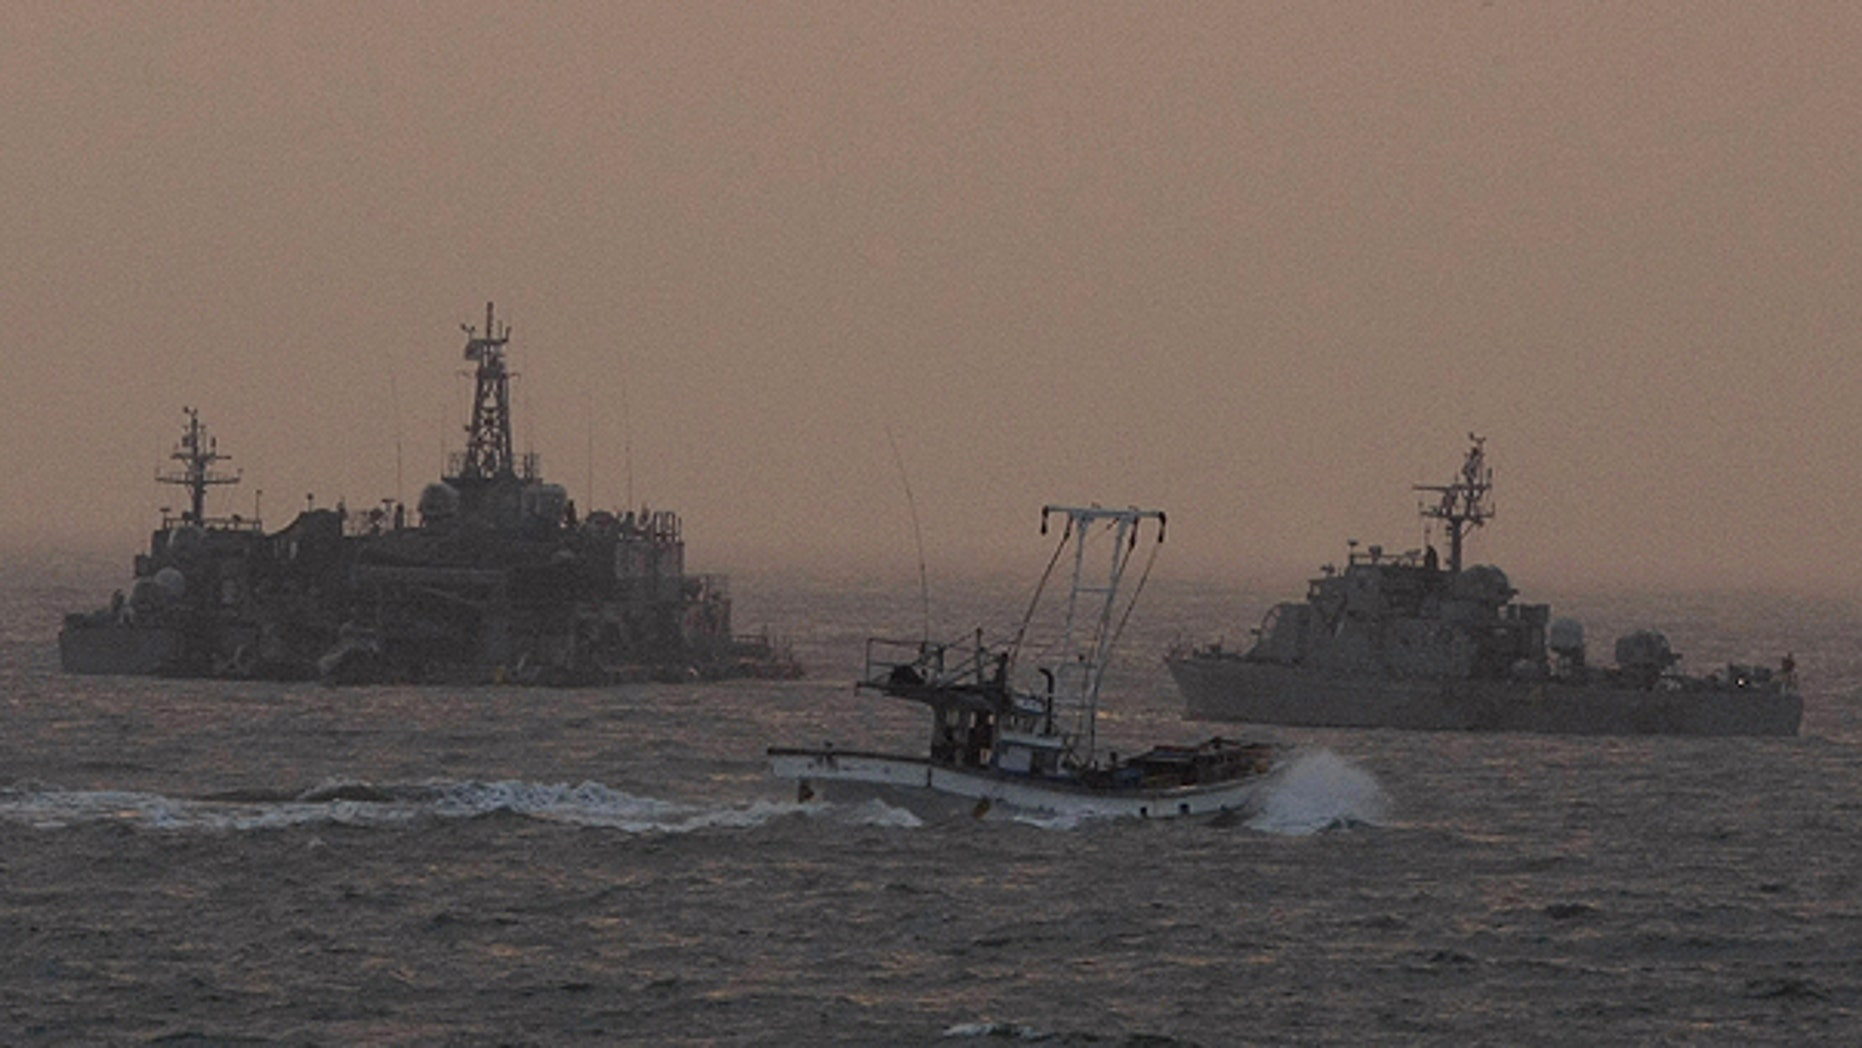 Dec. 19: A South Korean fishing boat sails by a South Korean navy facility and navy ship near Yeonpyeong island, South Korea.